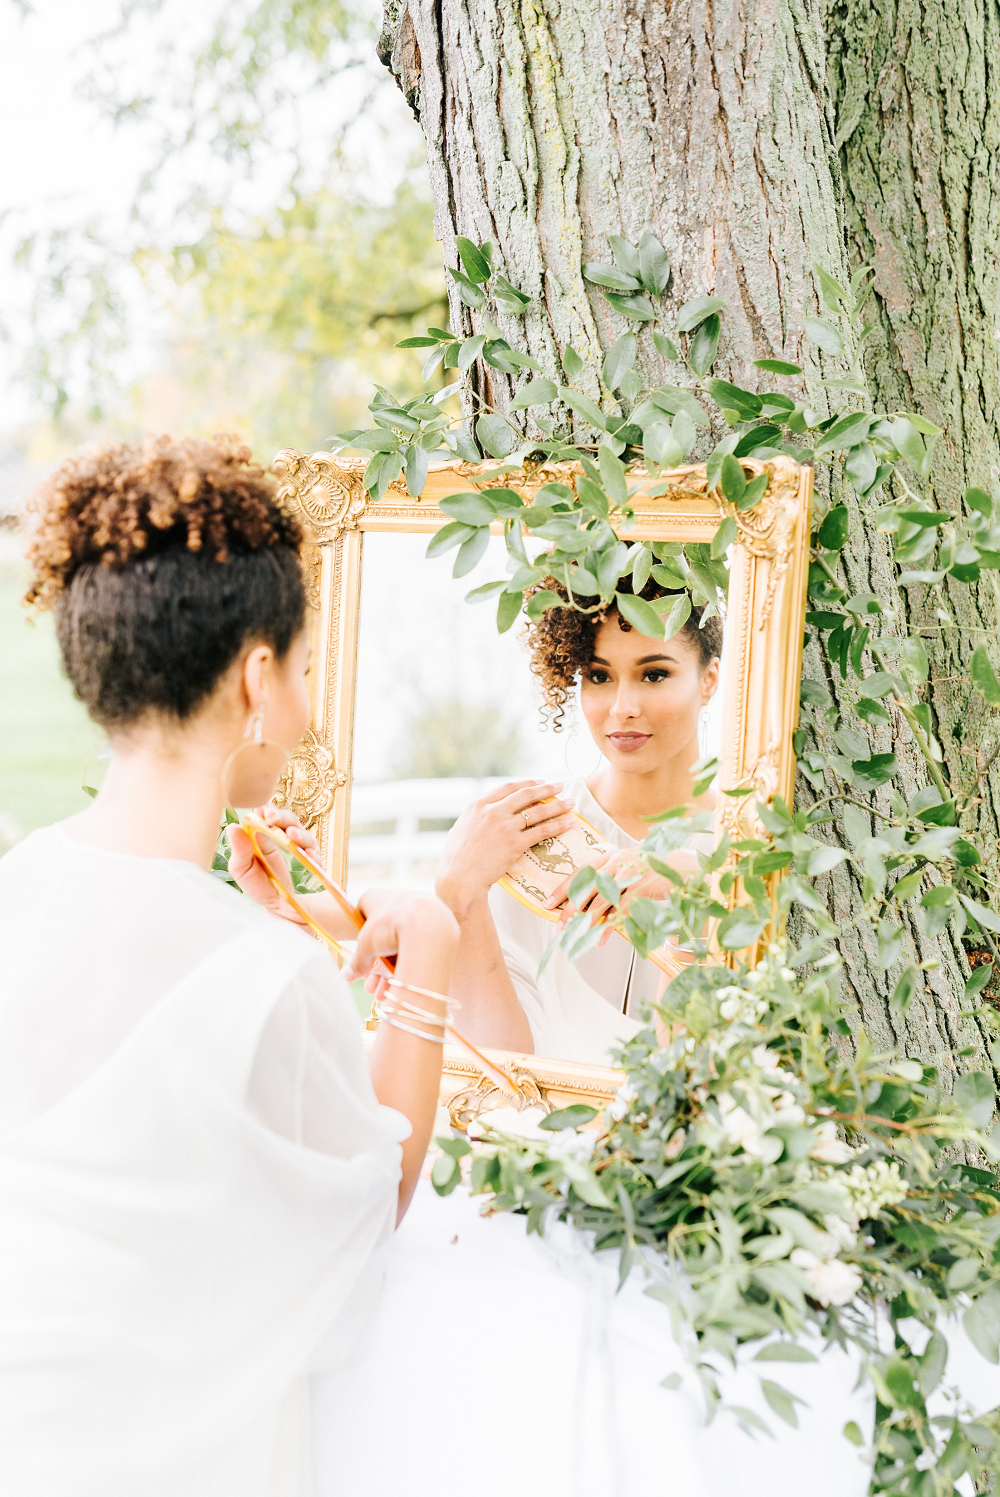 Lush Greenery Wedding Inspired Styled Shoot at Cornman Farms Bridal Details Gilded Mirror